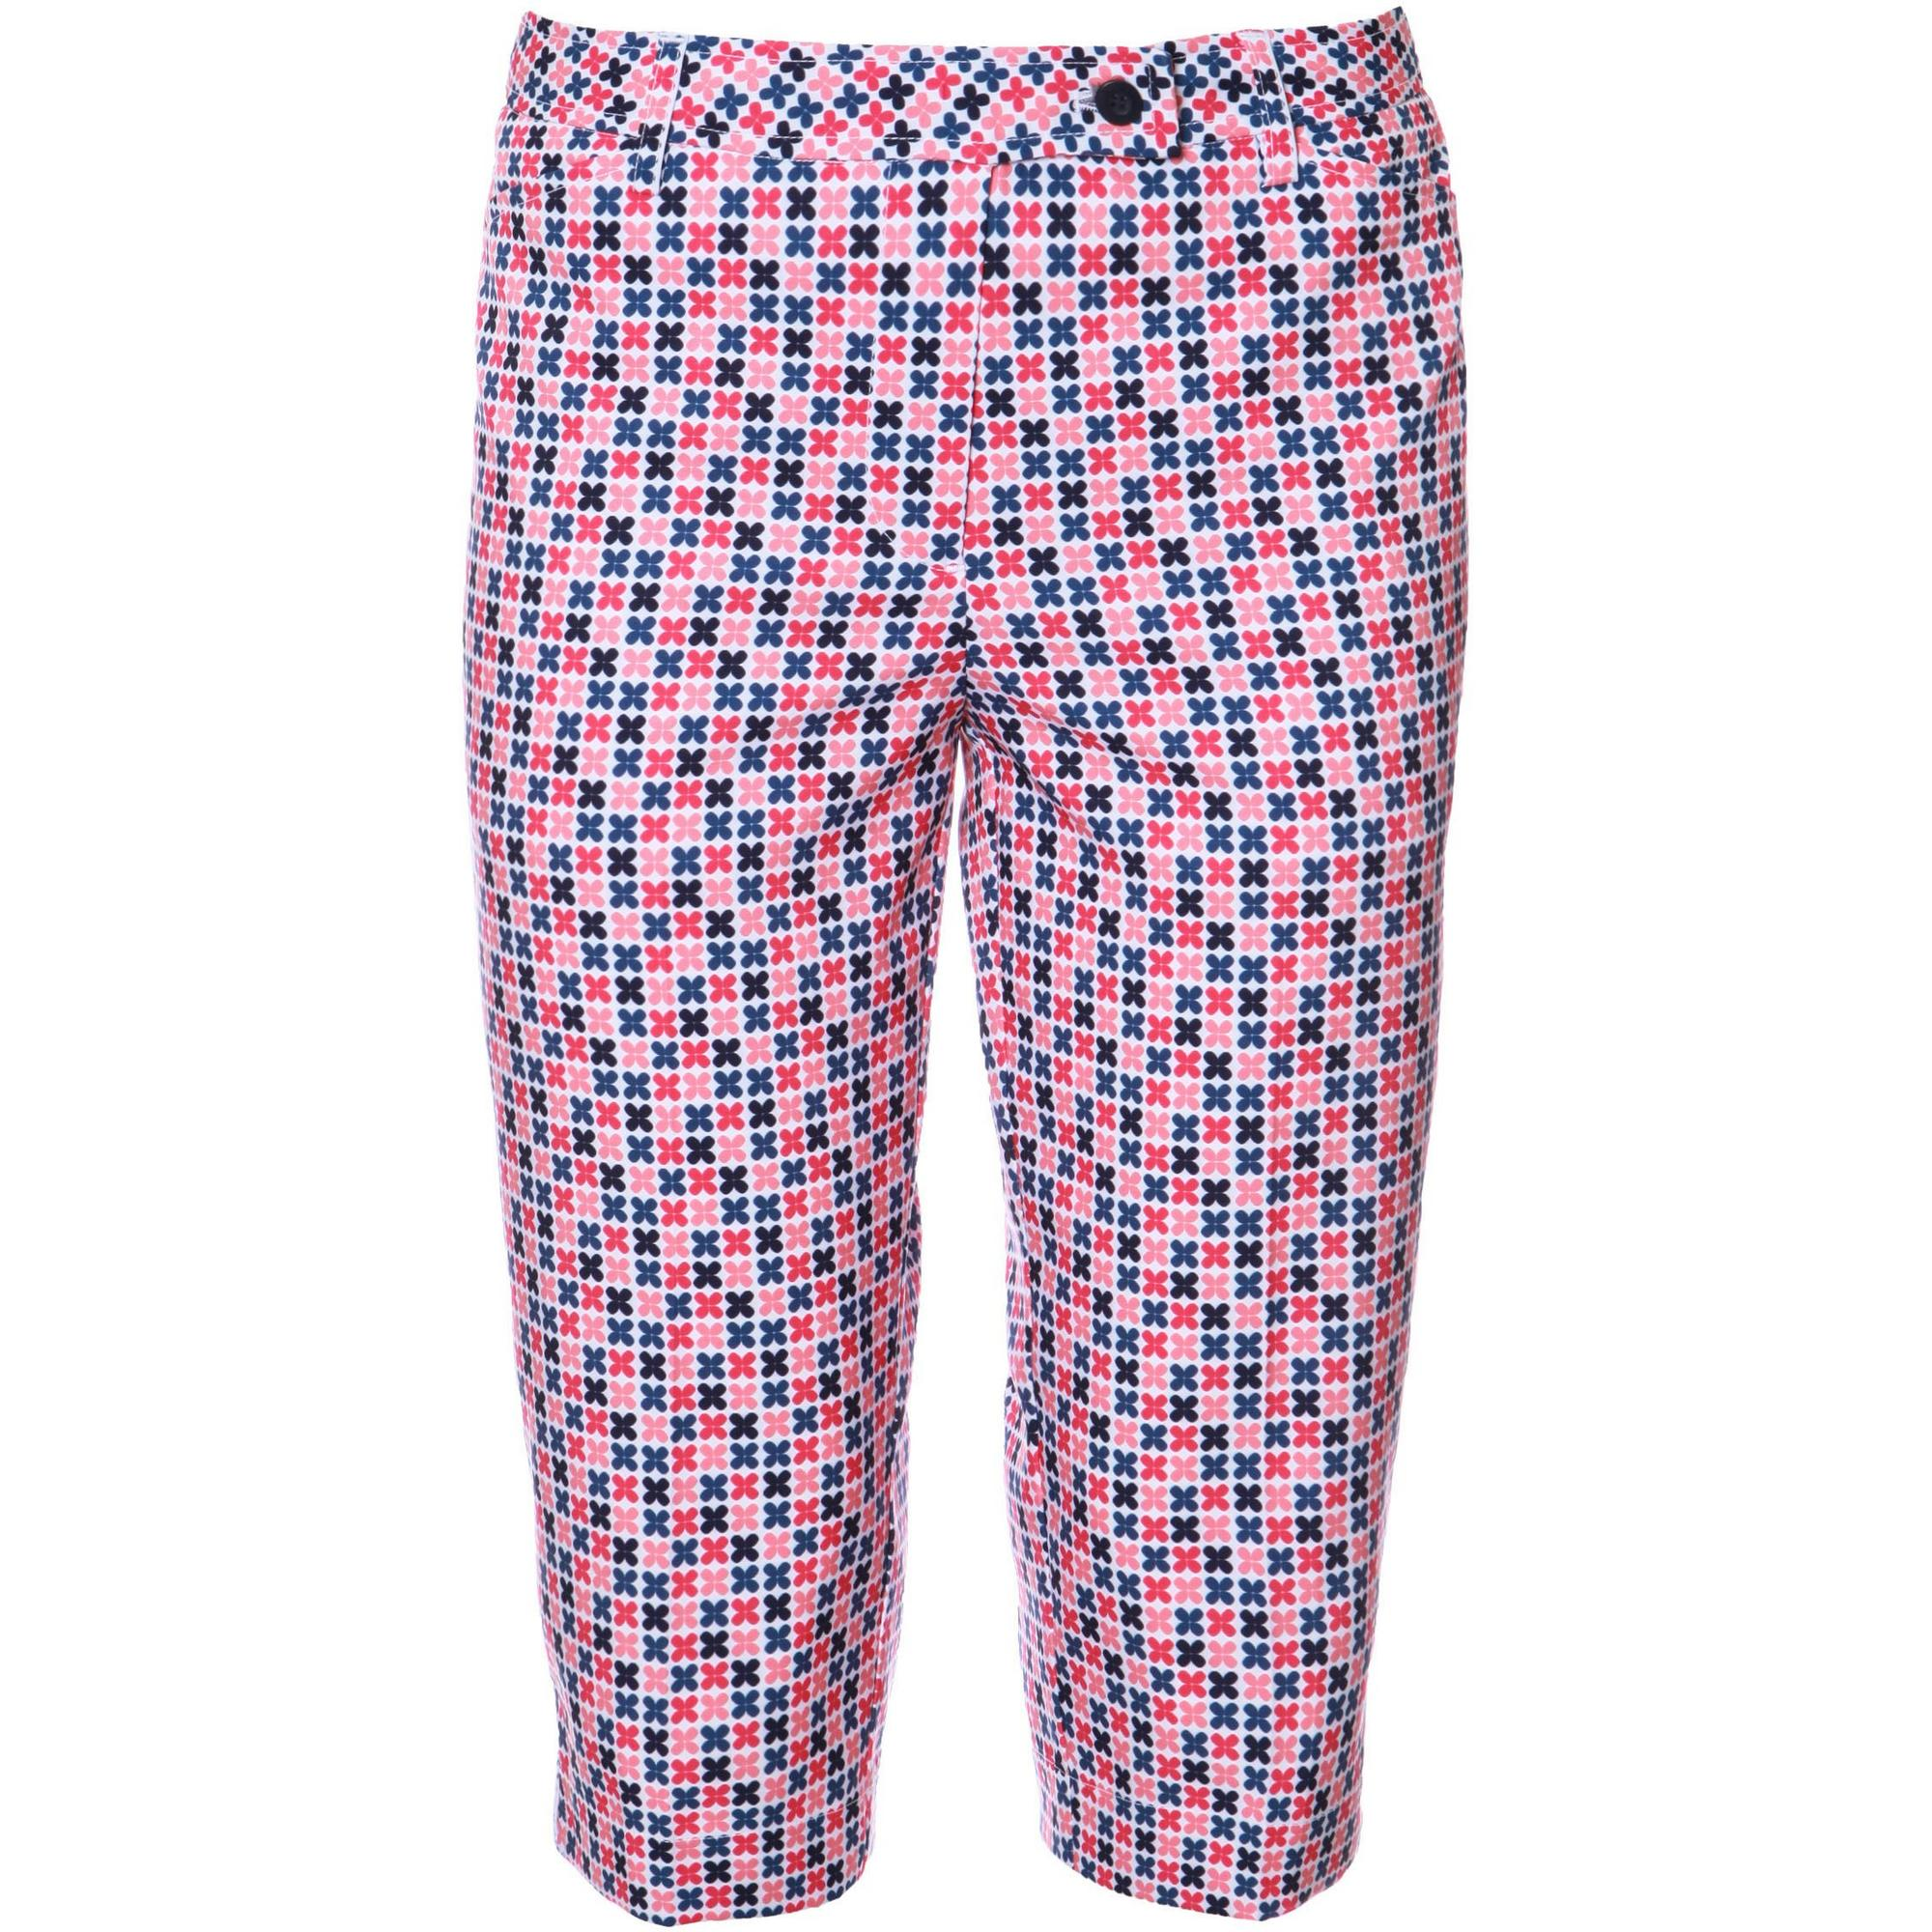 Women's Lillian Printed Capri Pant